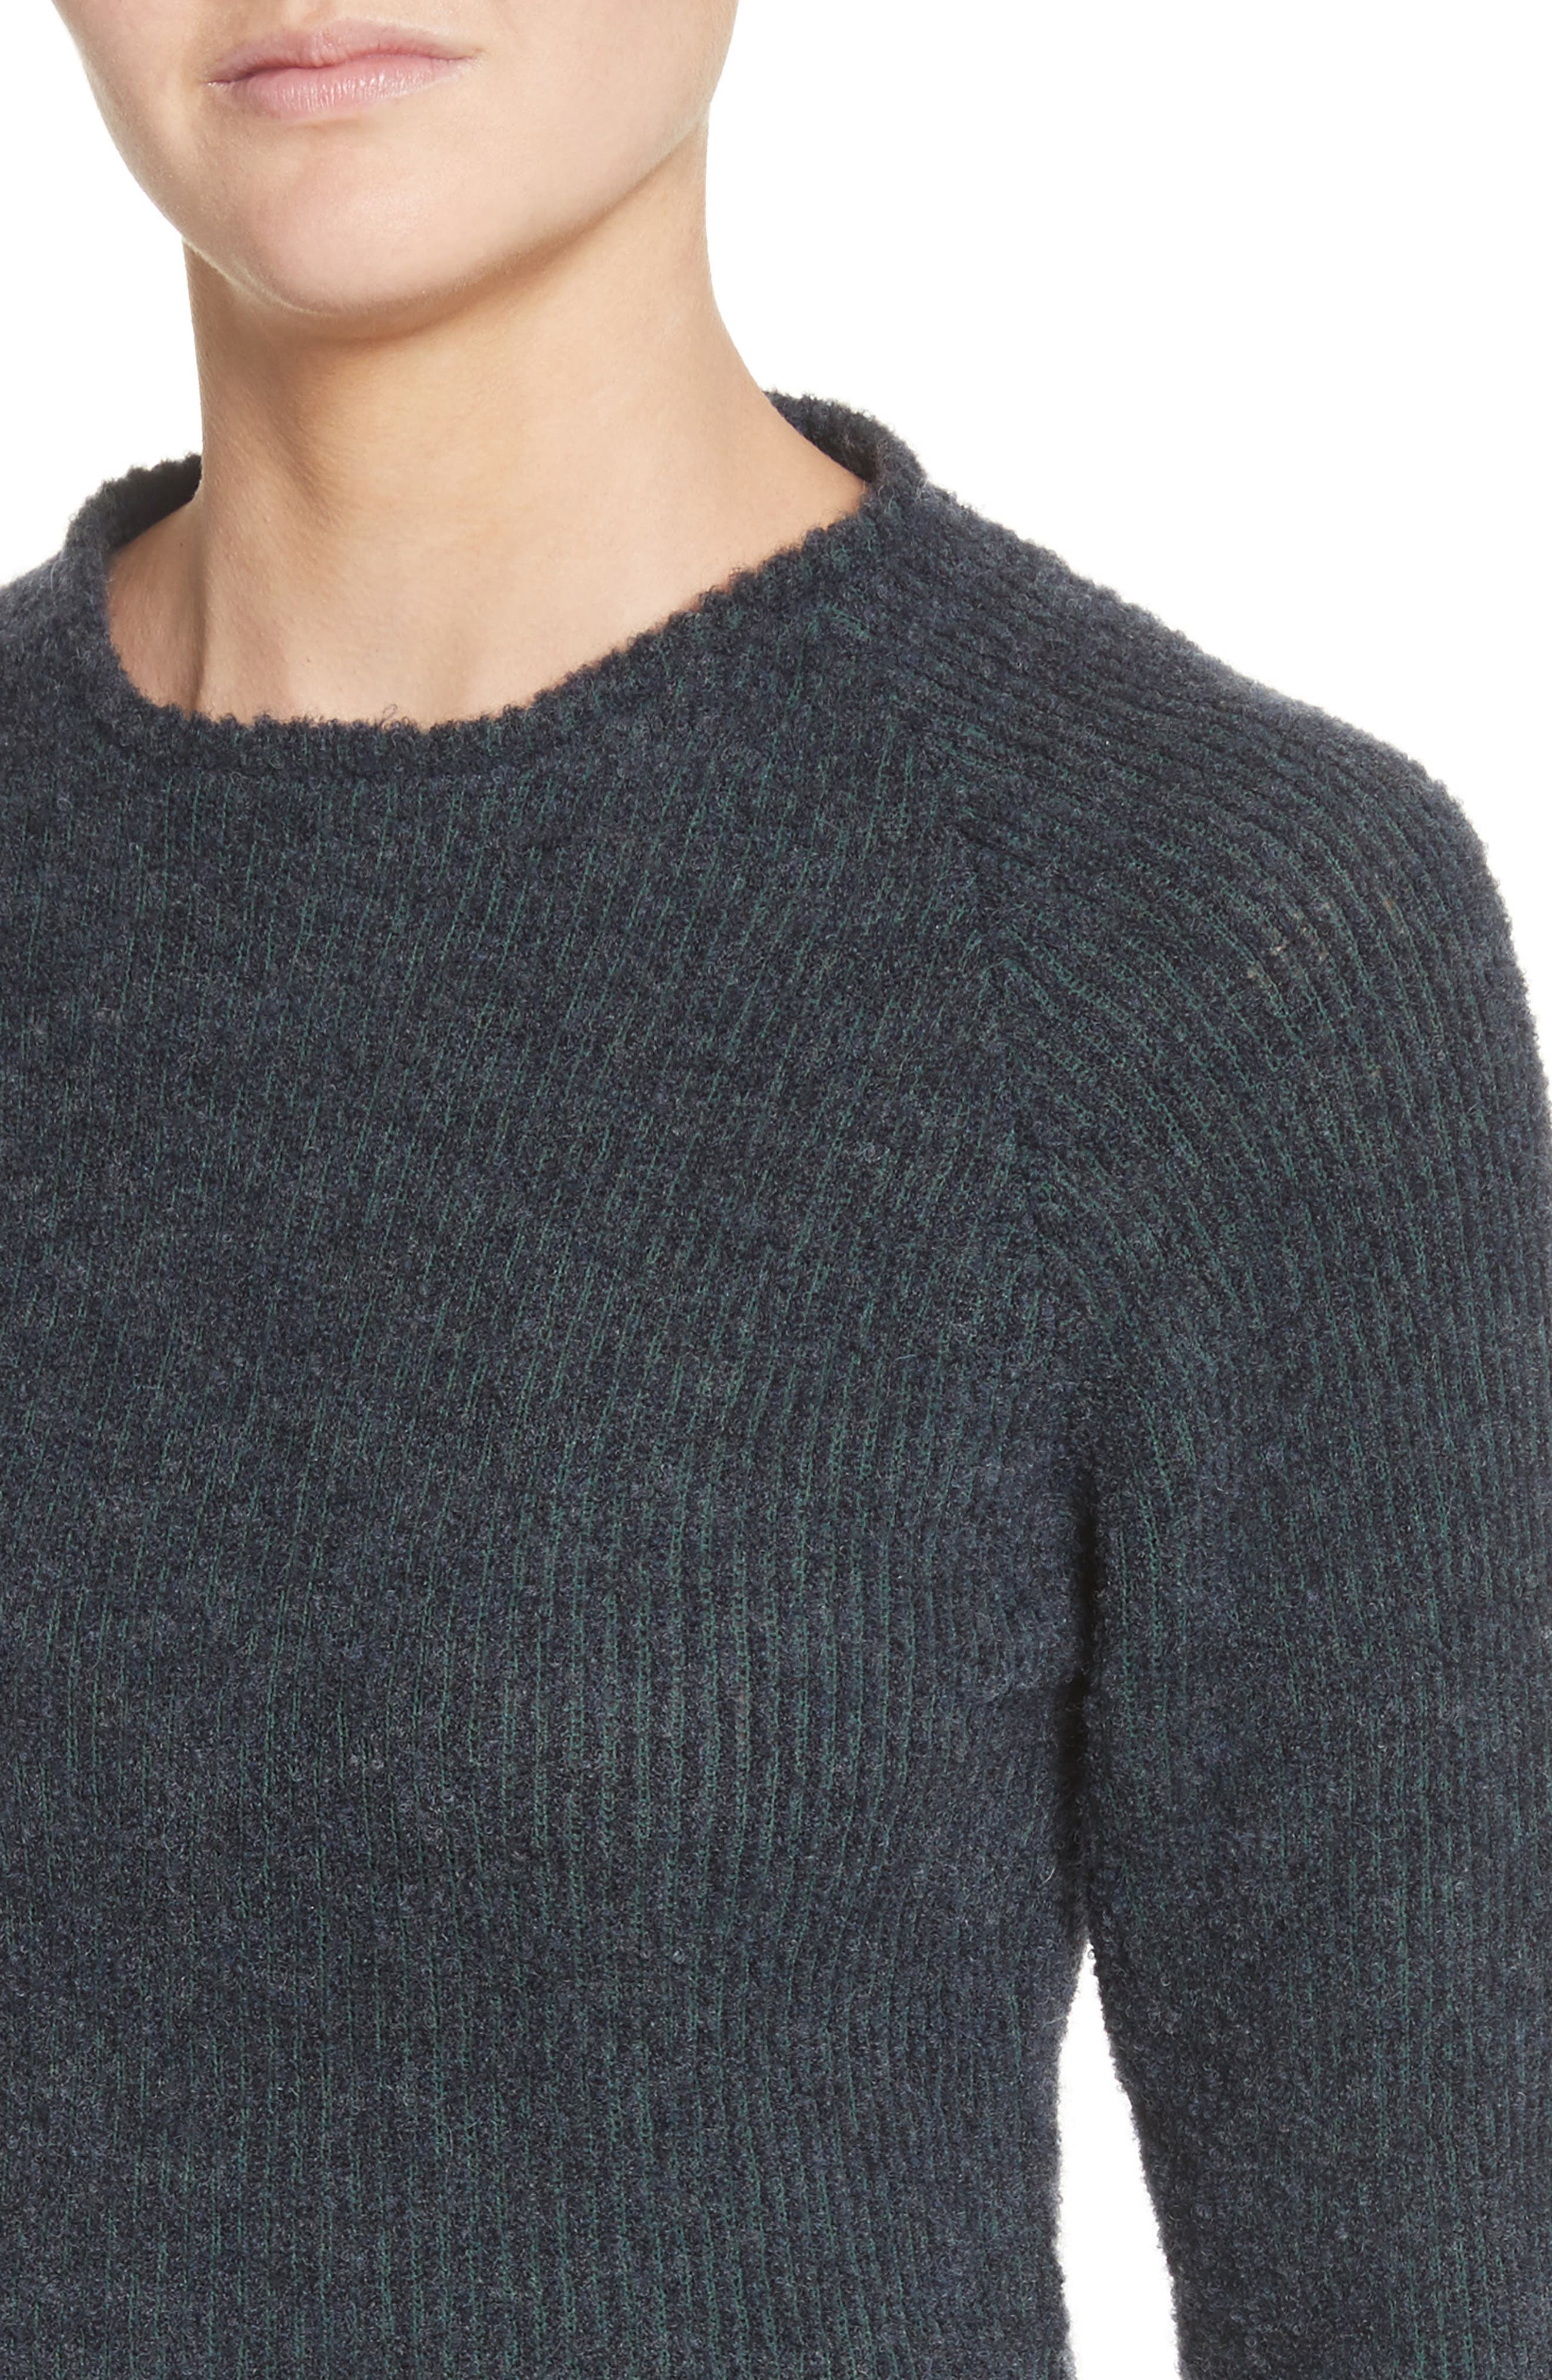 Raglan Pullover Sweater,                             Alternate thumbnail 4, color,                             NAVY